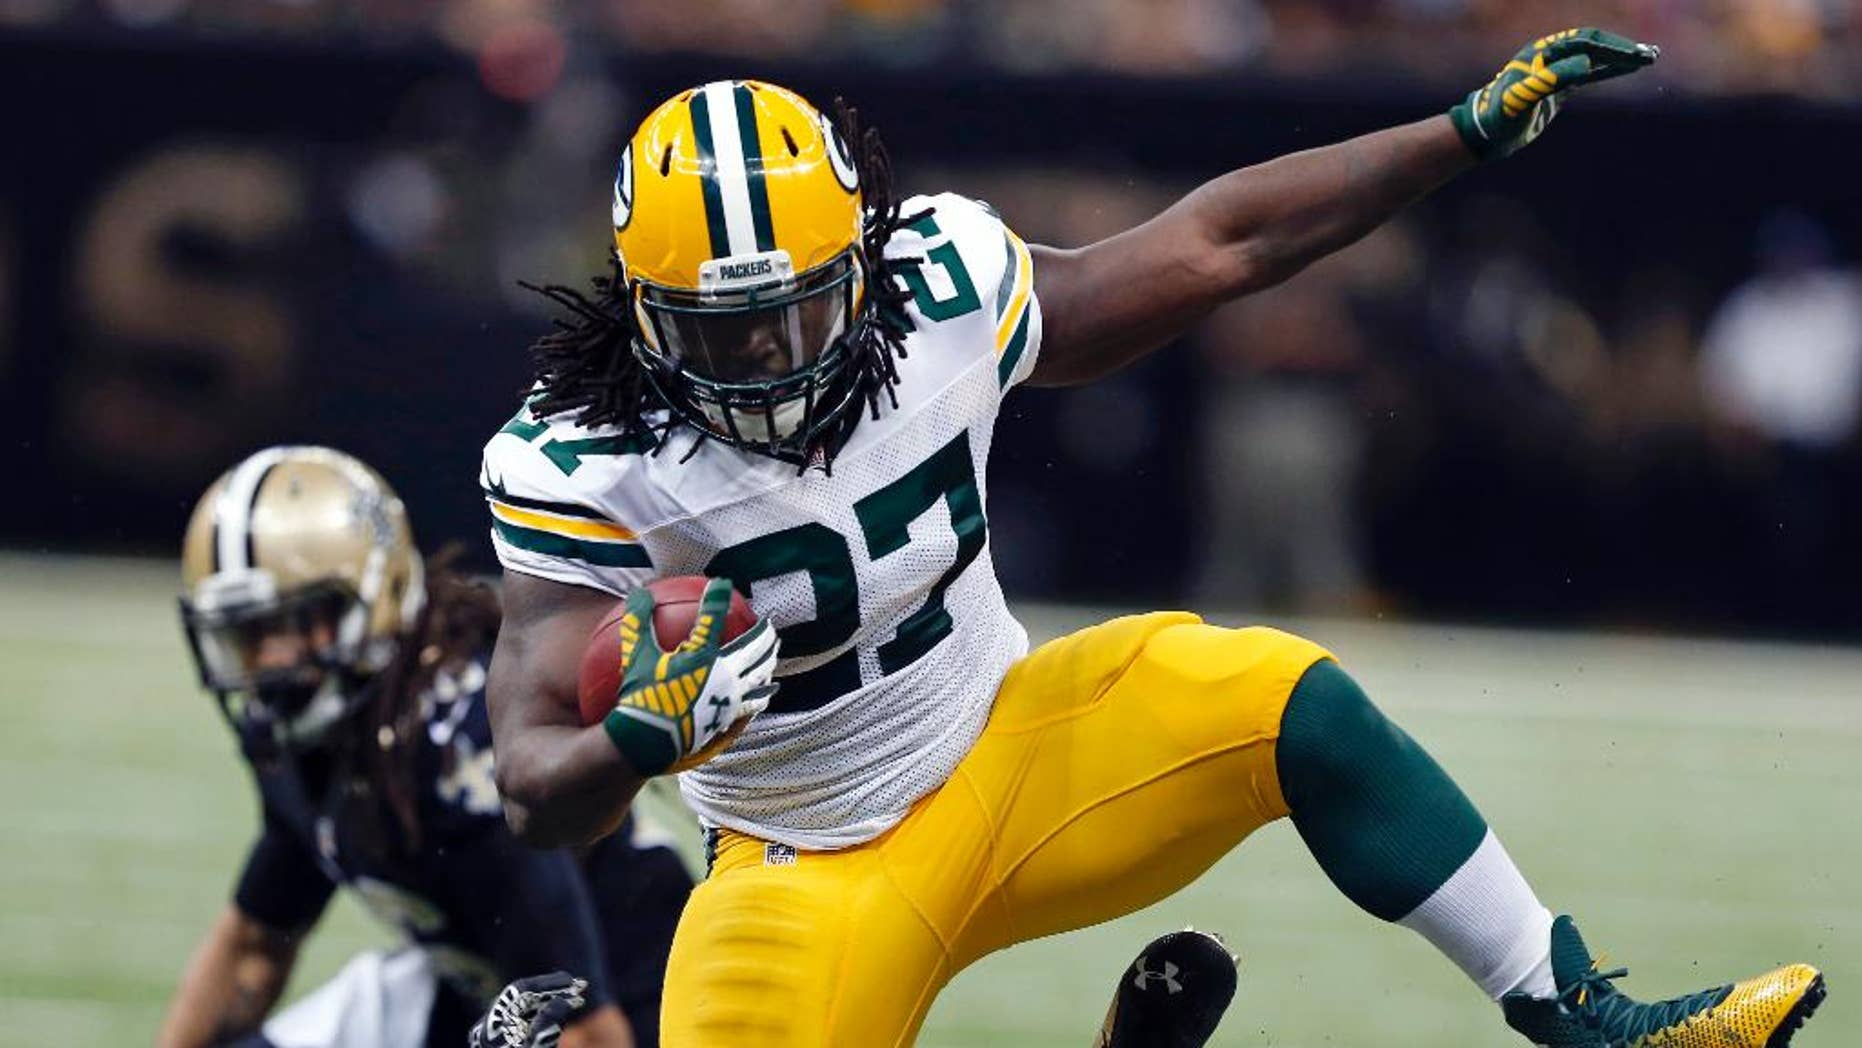 FILE - In this Oct. 26, 2014, file photo, Green Bay Packers running back Eddie Lacy (27) carries over fallen New Orleans Saints free safety Rafael Bush (25) in the second half of an NFL football game in New Orleans. Lacy is rolling over defenders. Aaron Rodgers is rolling in general. The Packers have climbed into a first-place tie in the NFC North by winning six of their last seven games. (AP Photo/Rogelio Solis, File)